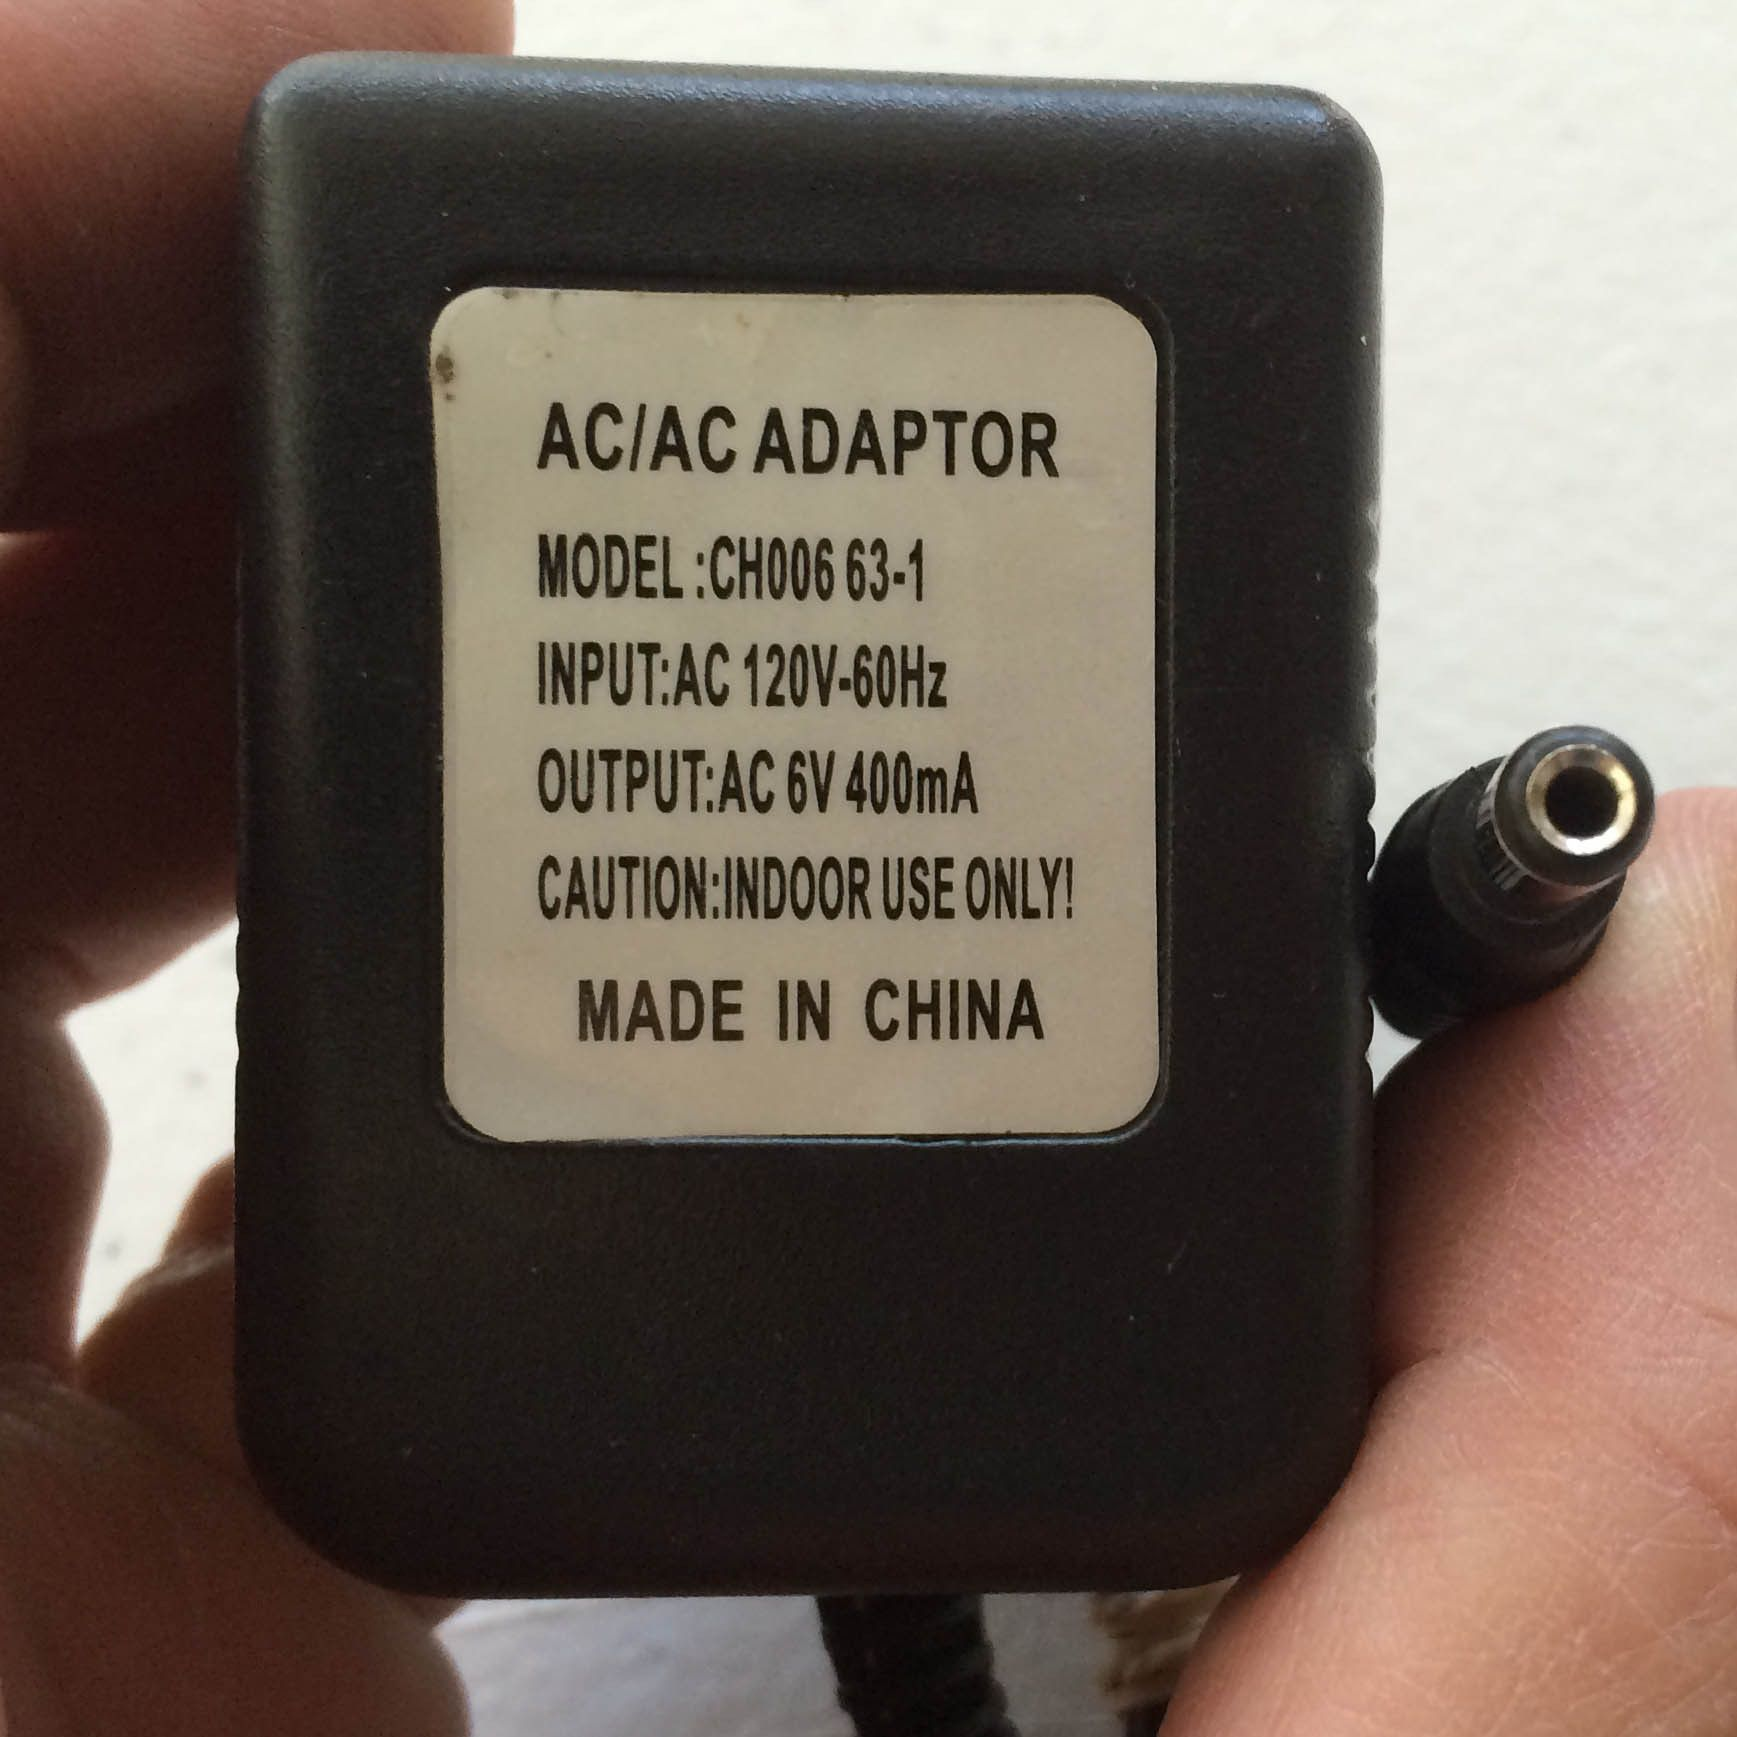 Model: CH006 63-1 (CH00663-1), Output: AC 6V 400mA Power Supply AC